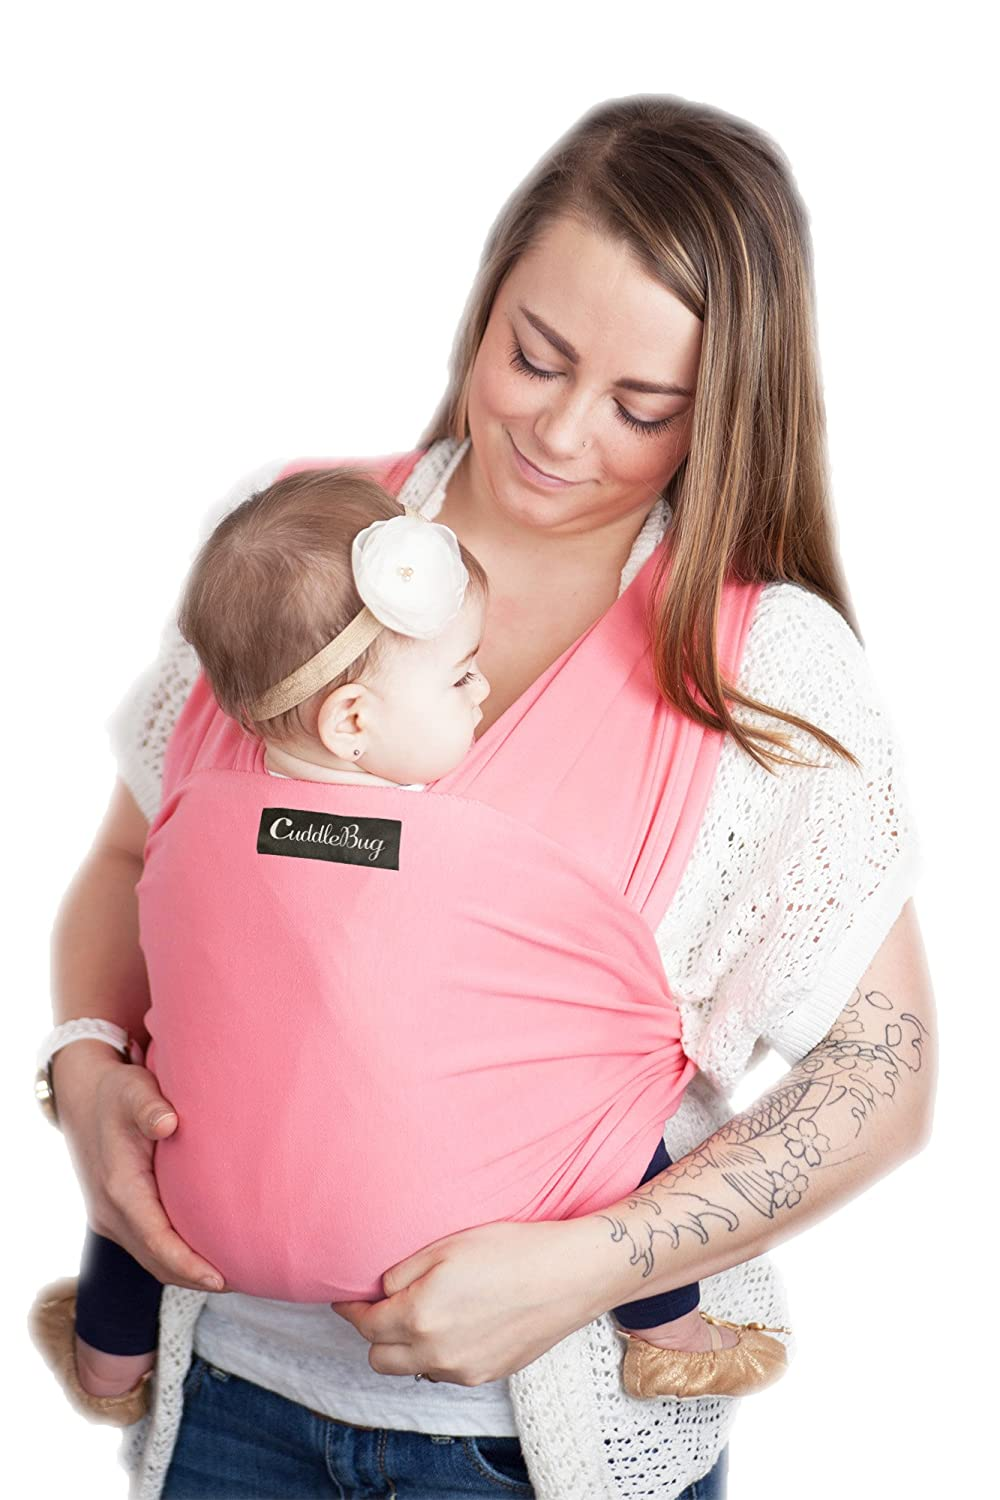 Baby Wrap Ergo Carrier Sling - by CuddleBug - Available in 8 Colors - Baby Sling, Baby Wrap Carrier, Nursing Cover - Specialized Baby Slings and Wraps for Infants and Newborn (Grey) GreyWrap1